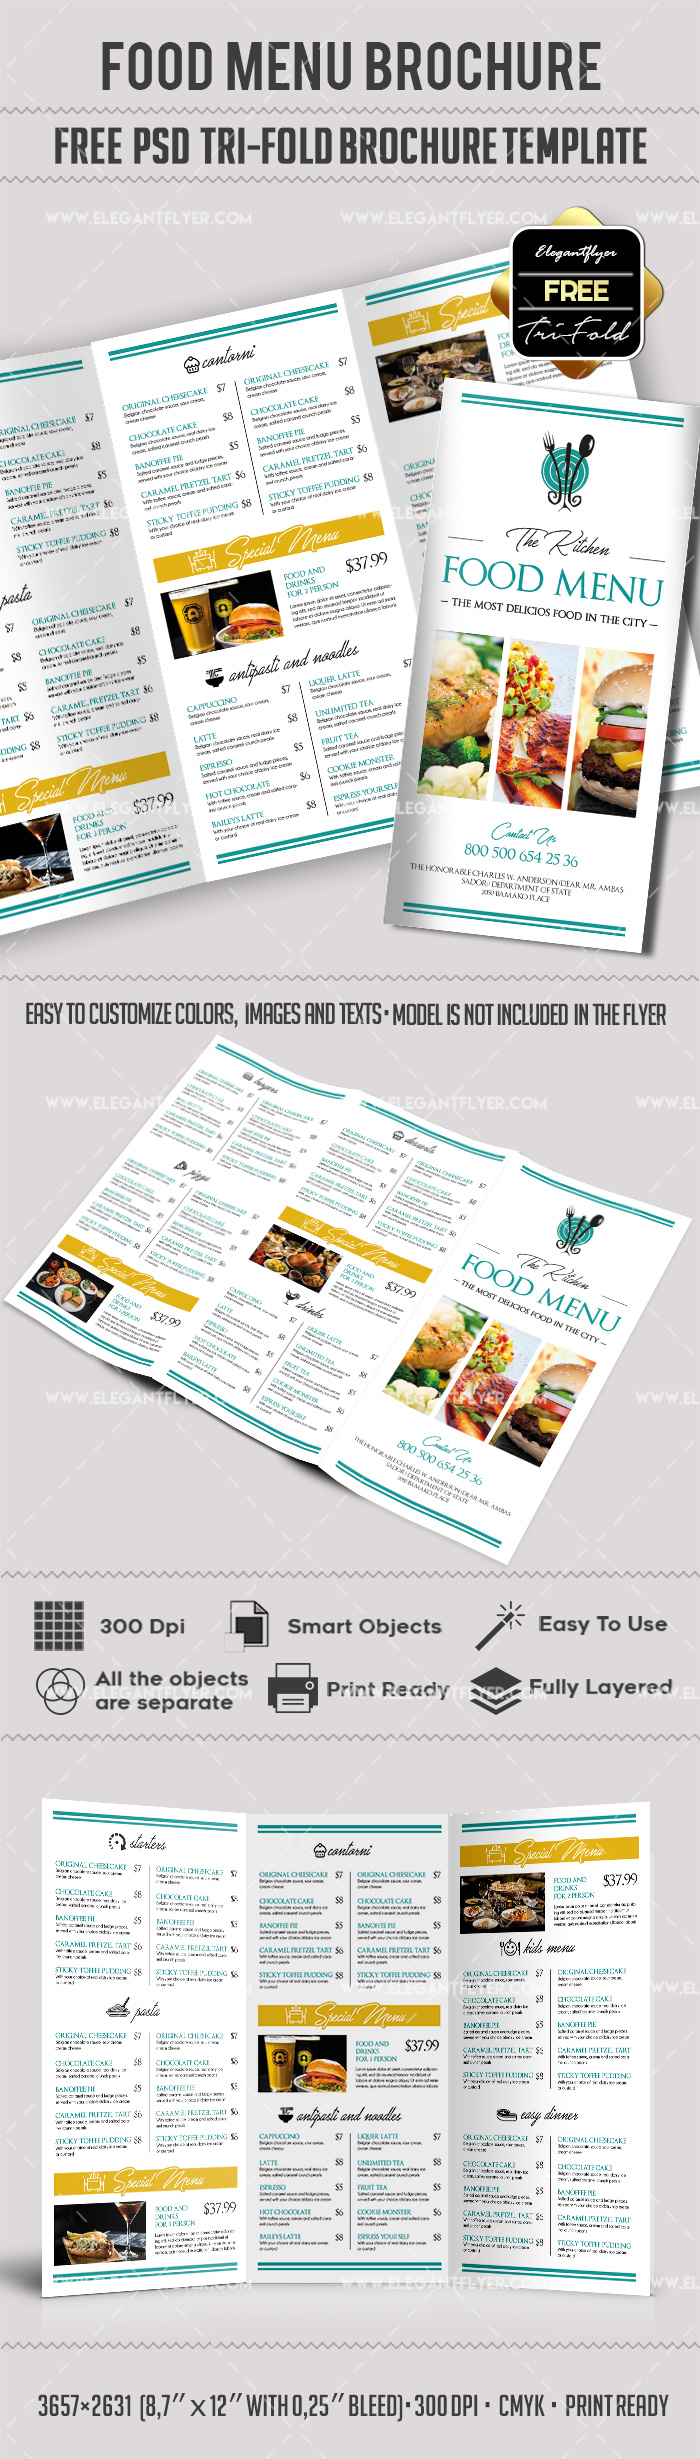 Free food menu tri fold psd brochure template by for Tri fold brochure psd template